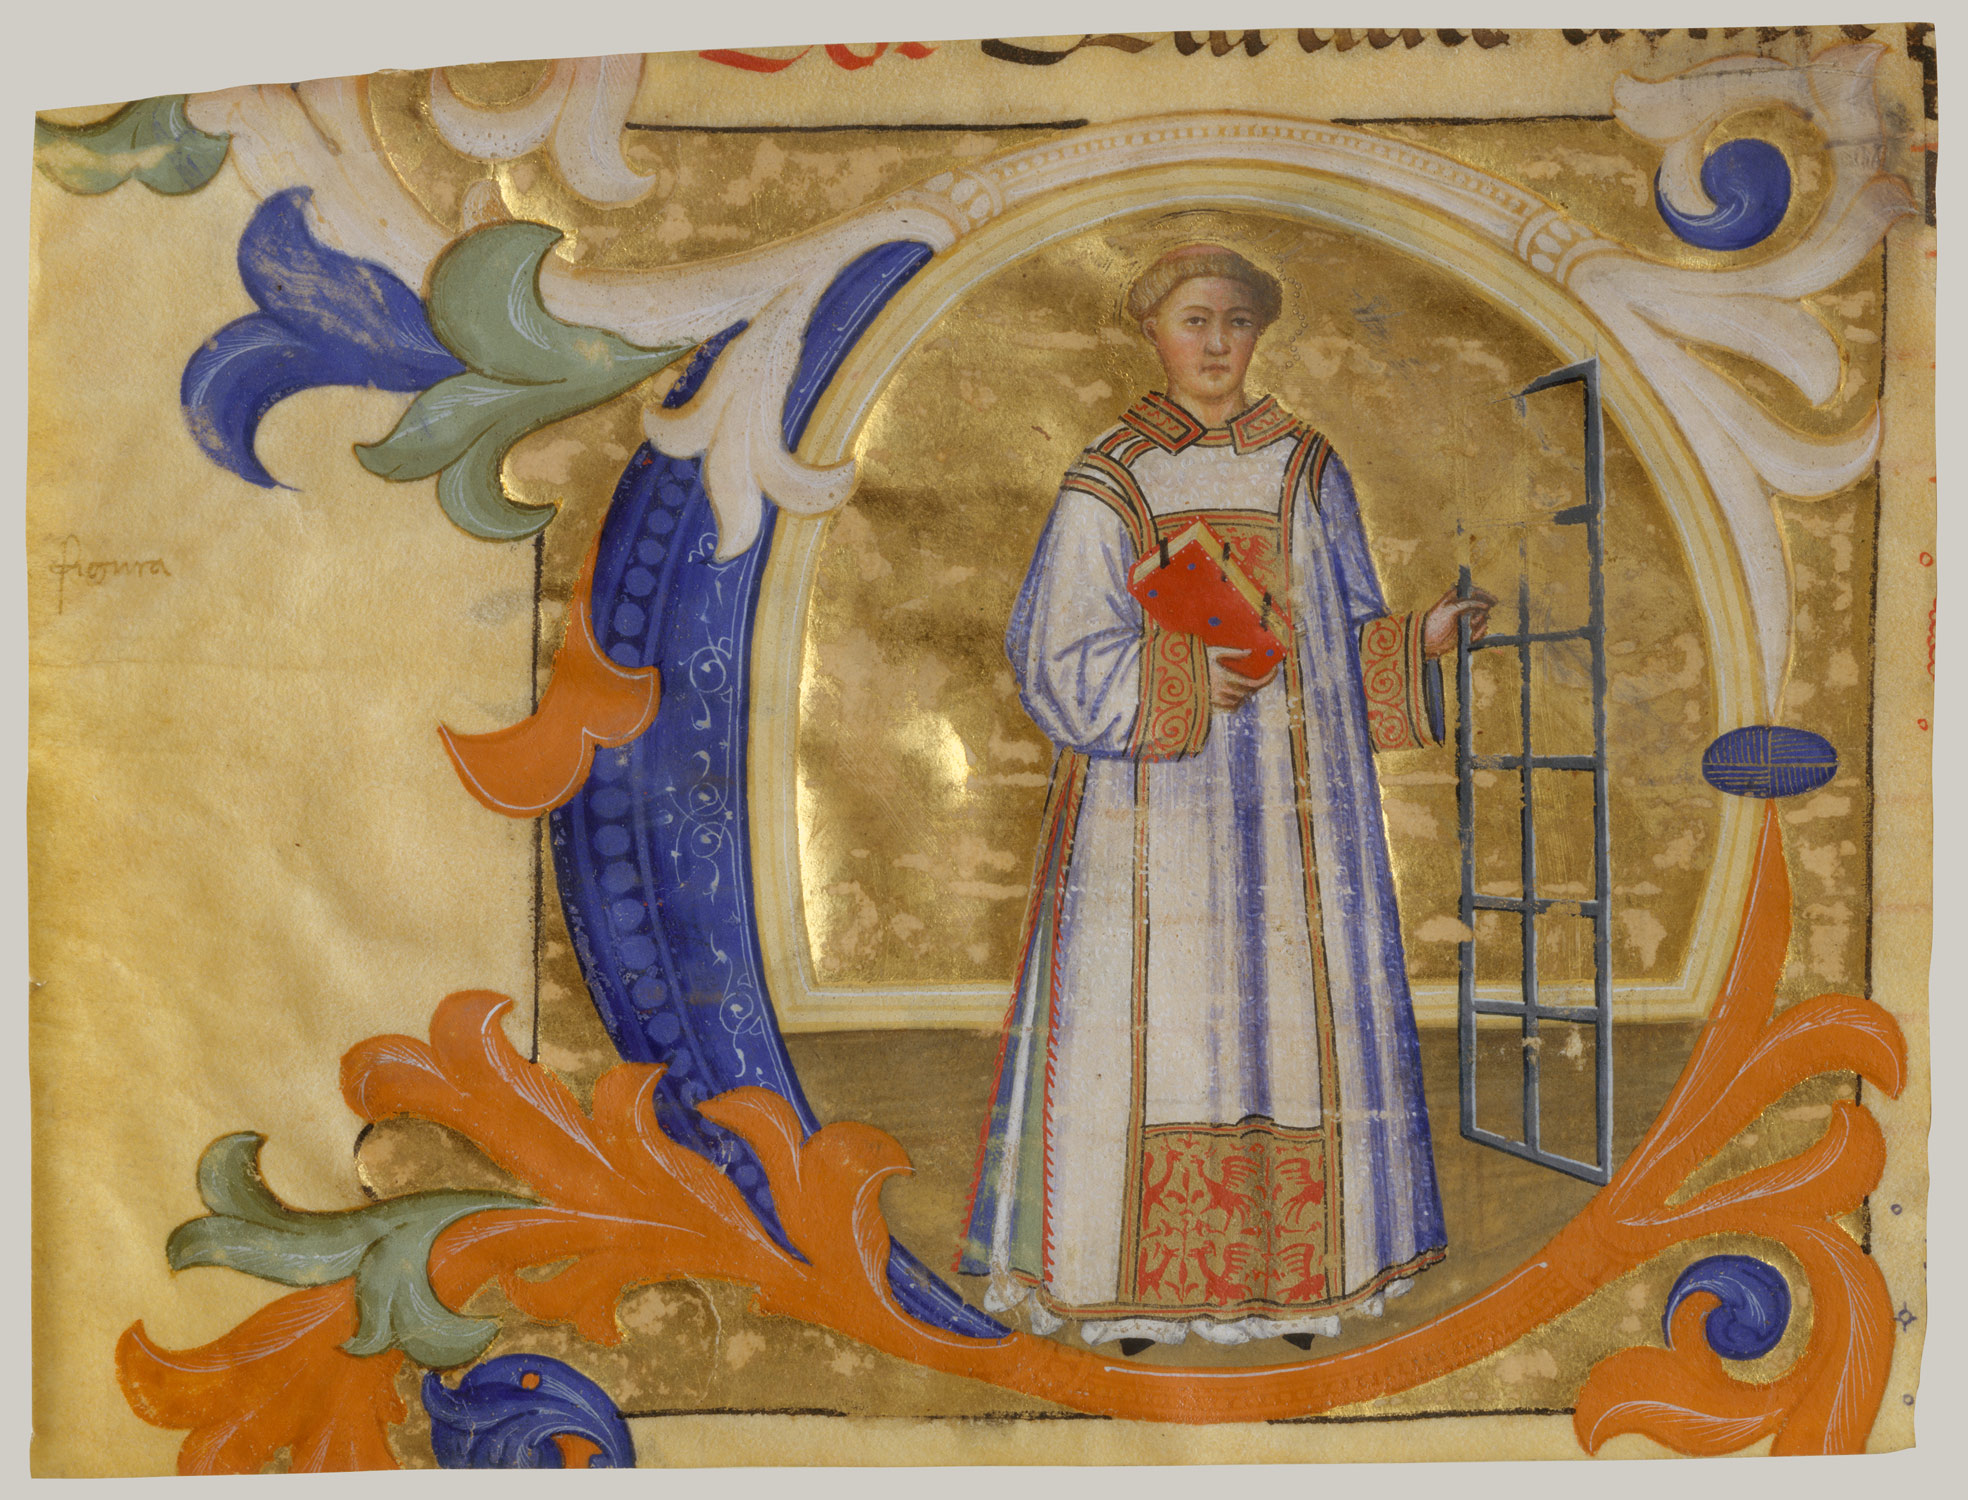 Manuscript Illumination With Saint Lawrence In An Initial